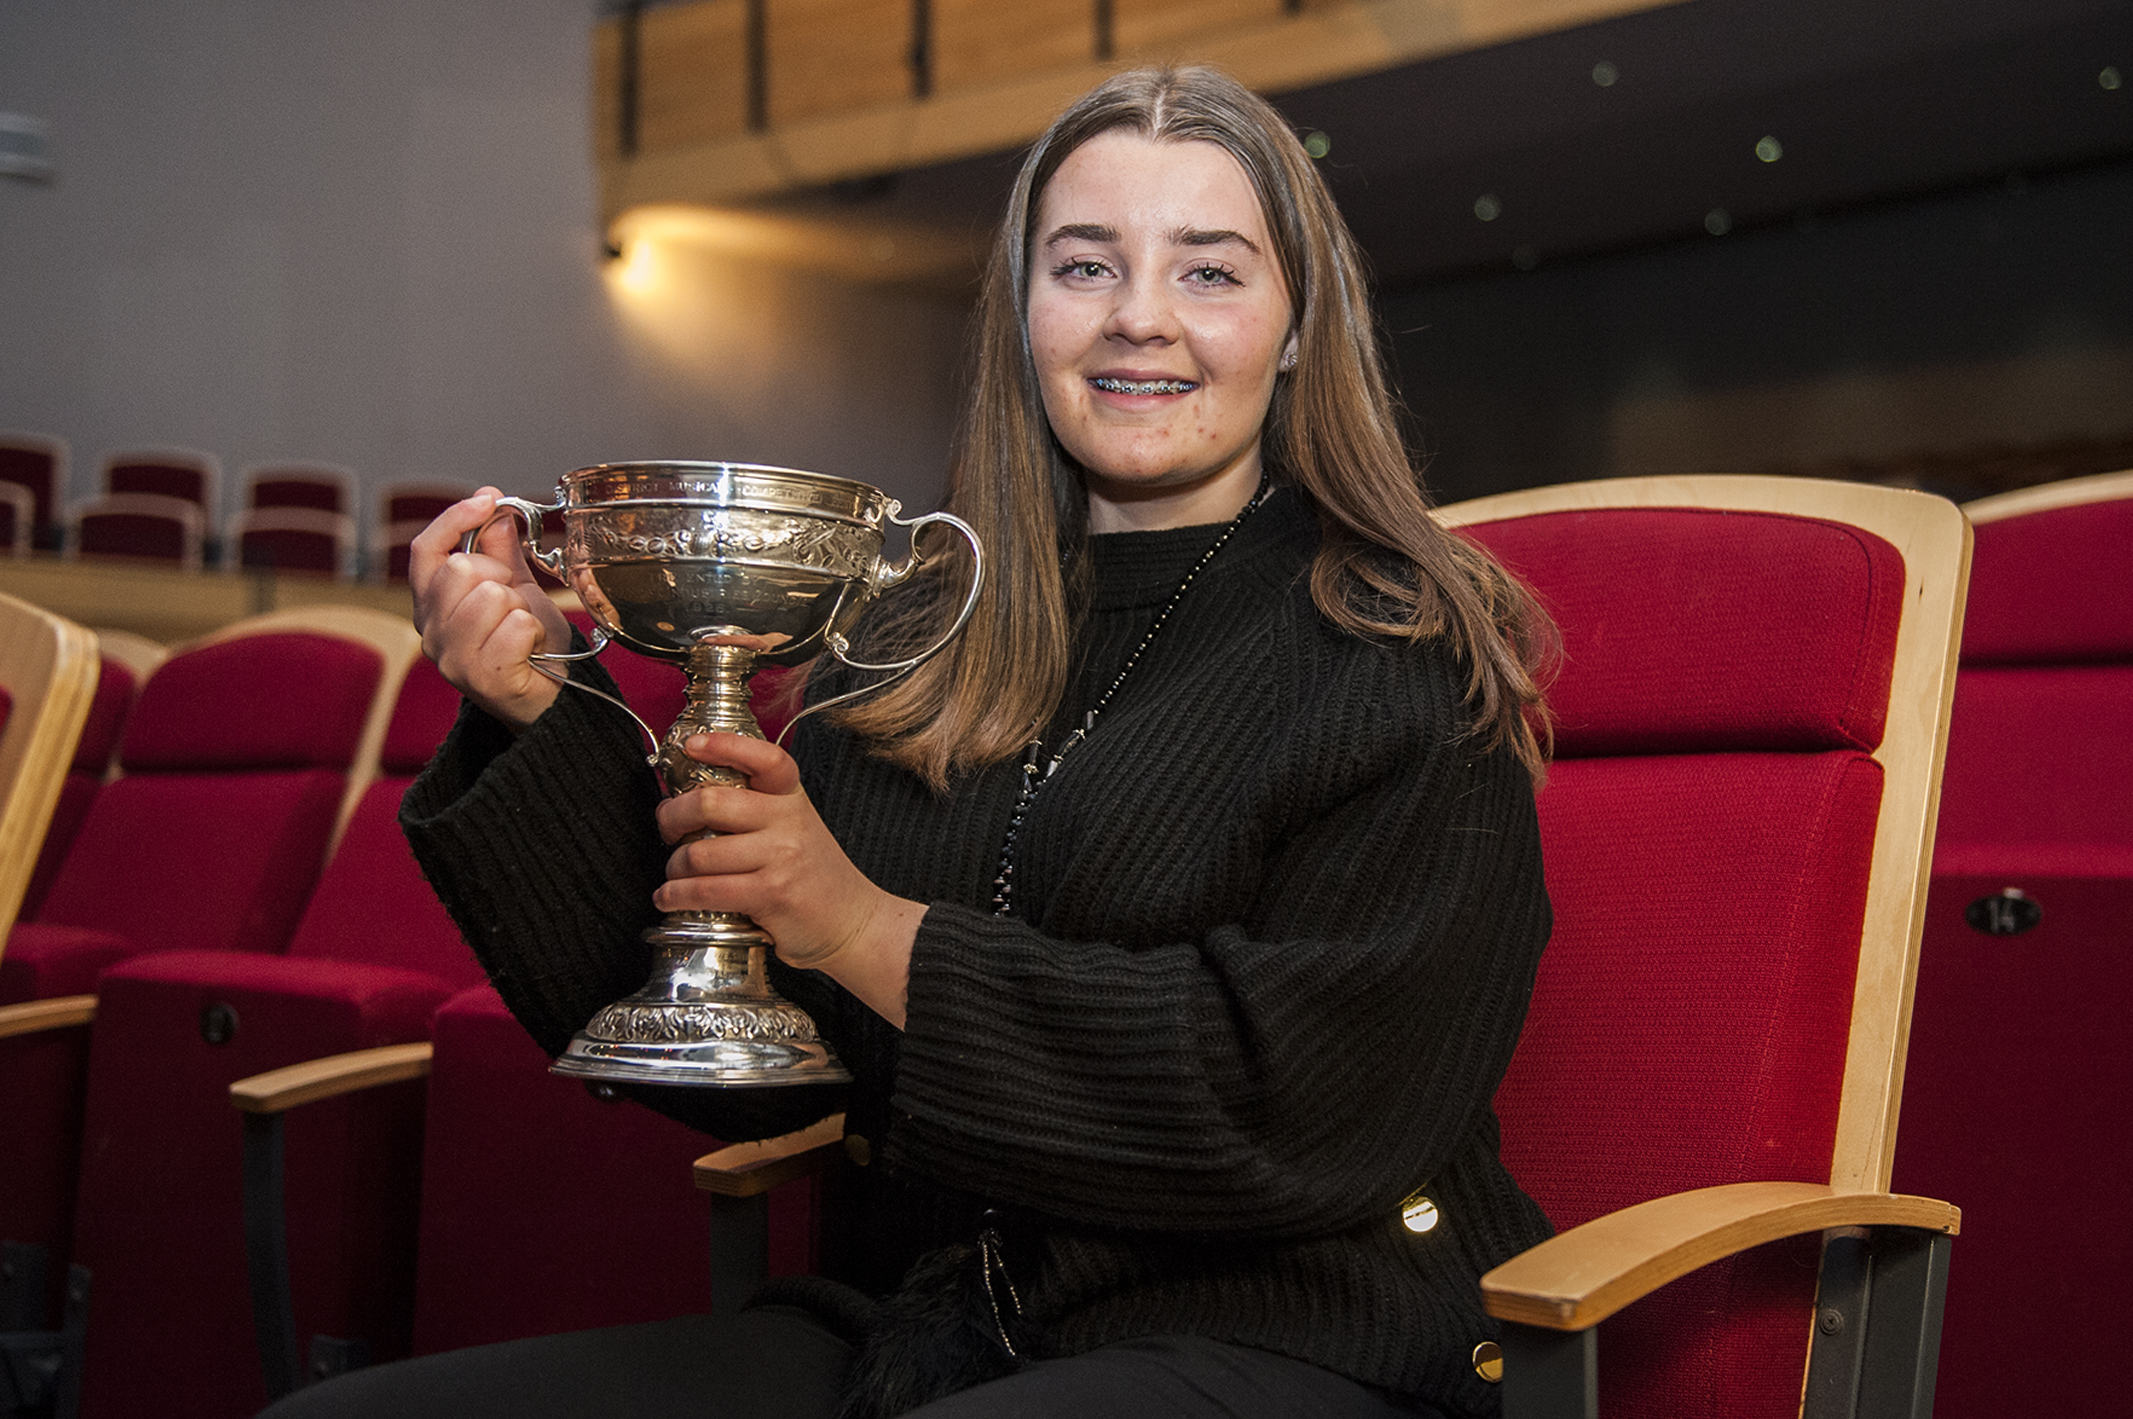 Megan Cant was the winner of the 2020 festival's top award, the Blue Riband.